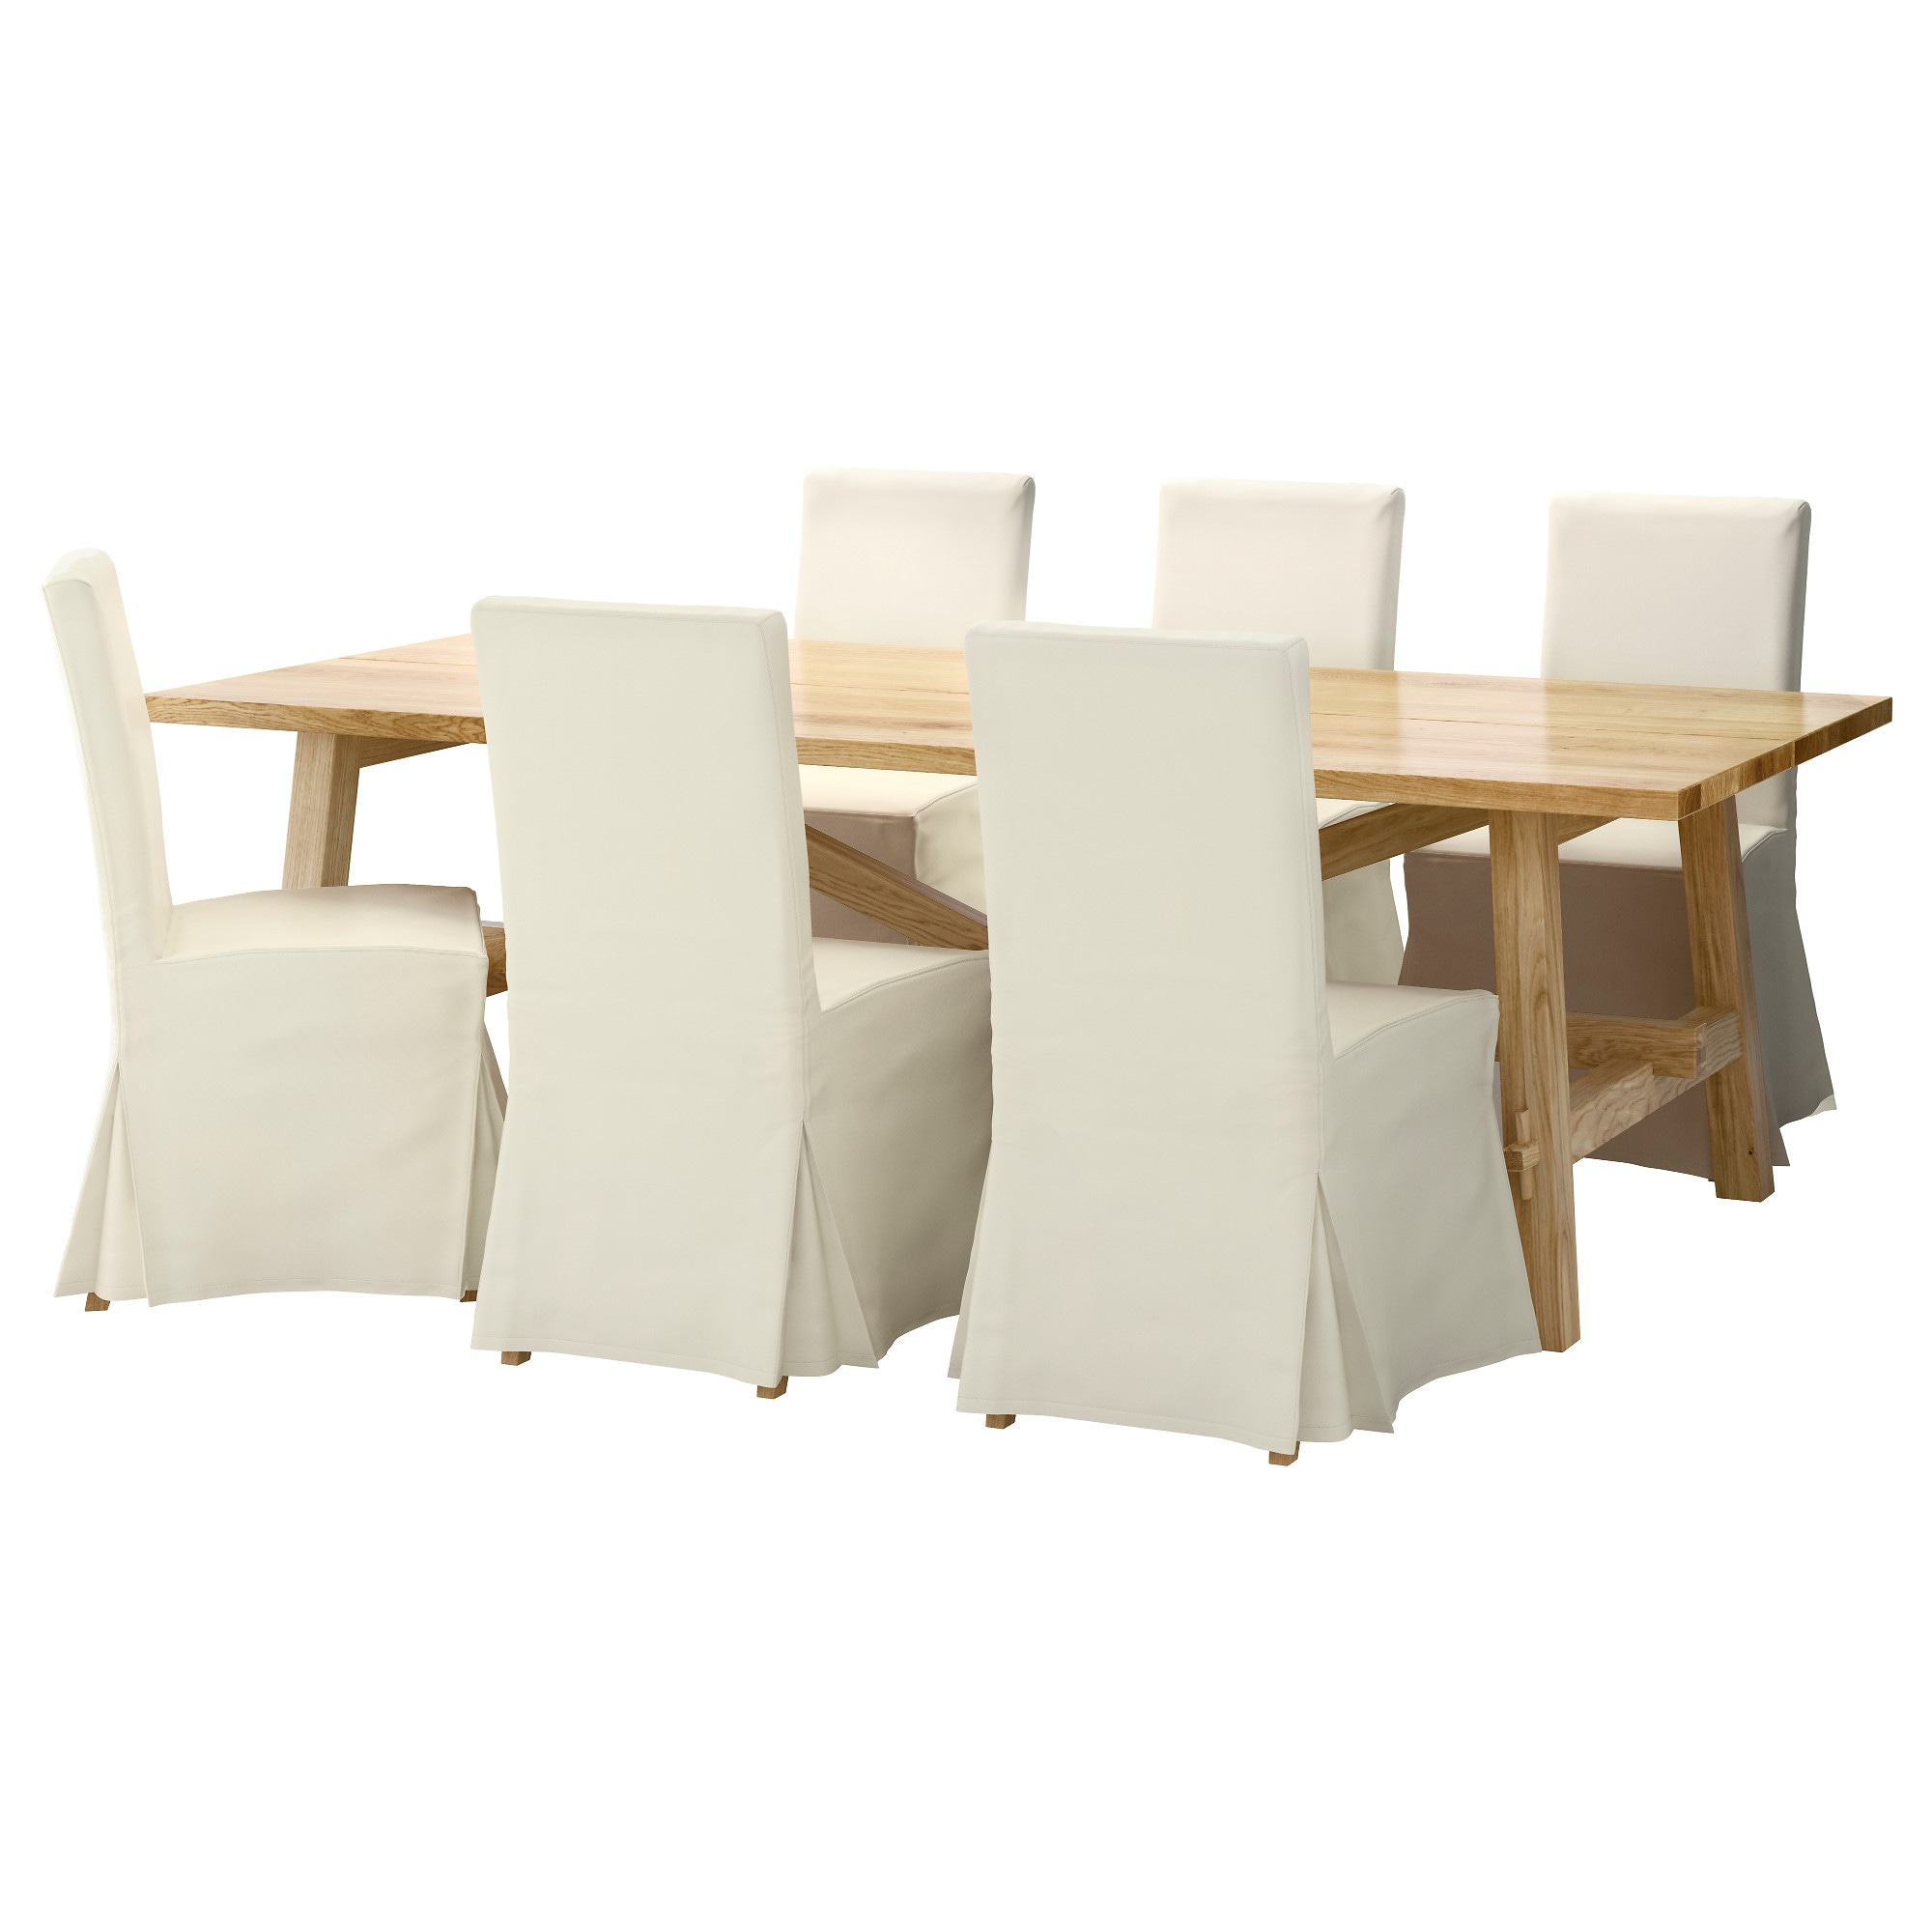 M–CKELBY HENRIKSDAL Table and 6 chairs IKEA